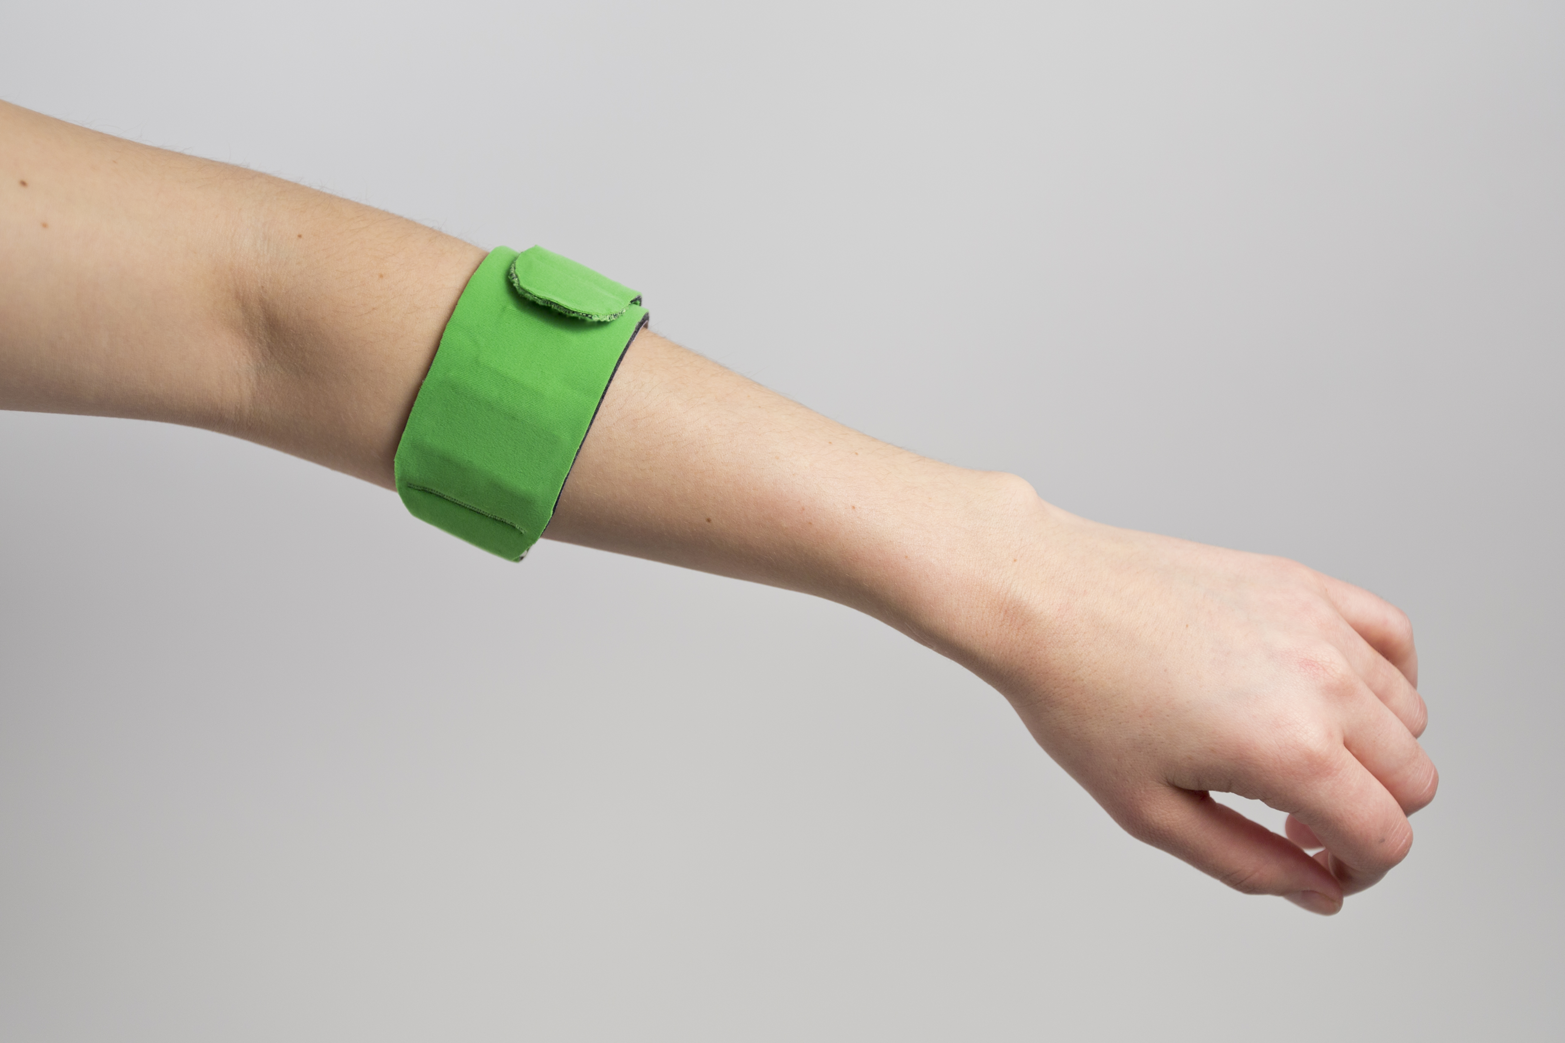 Users tested this prototype while running and doing yoga, and gave feedback on comfort and using the companion app